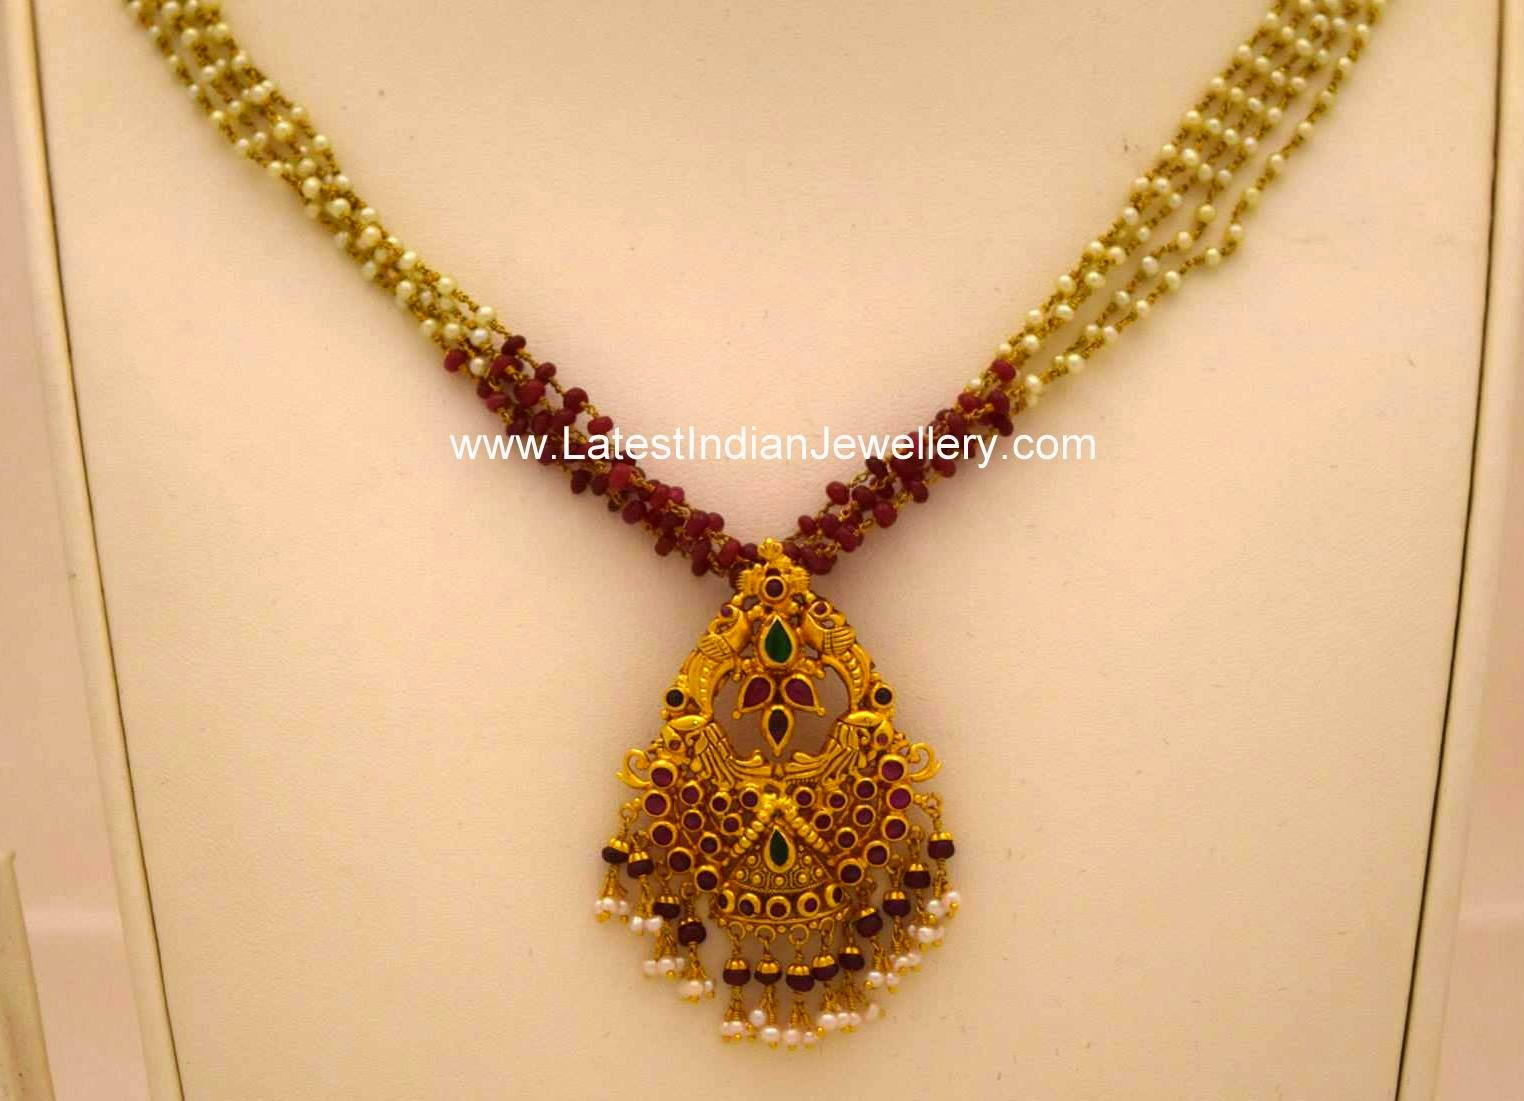 Light Weight Beads Chain Gold Pendant